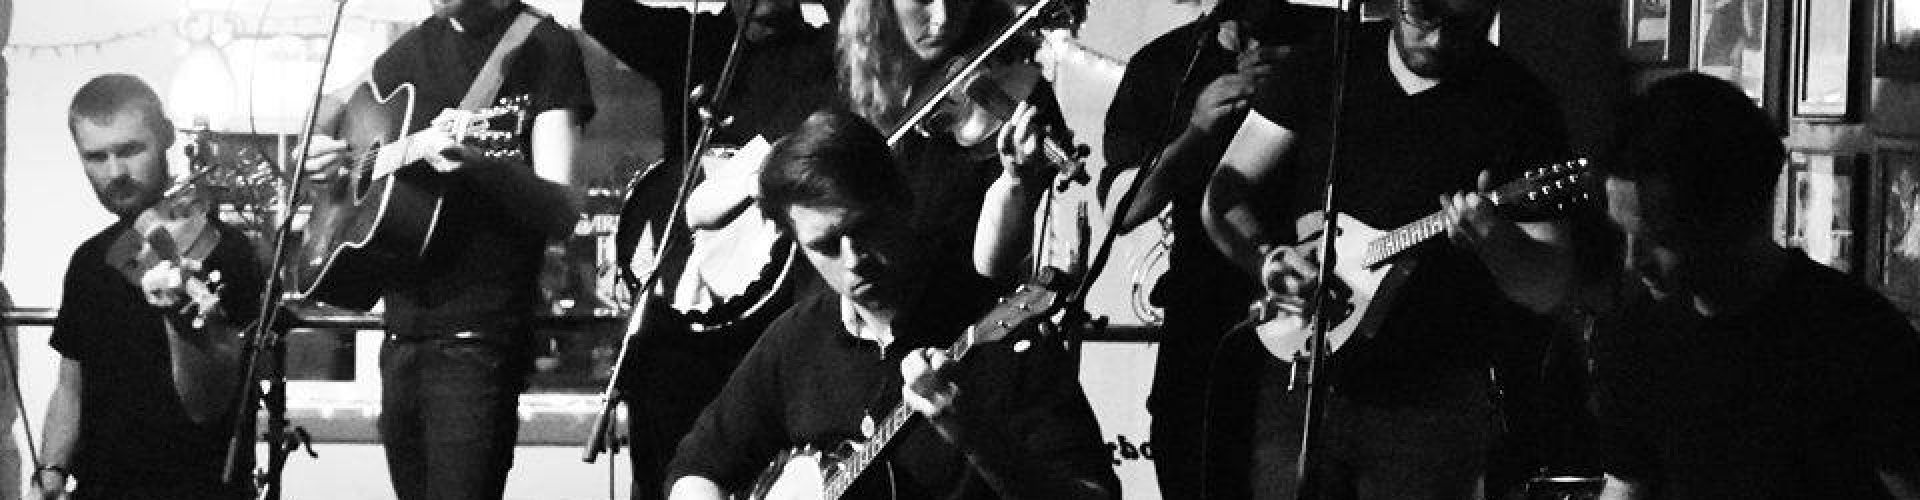 black and white image a band live in action